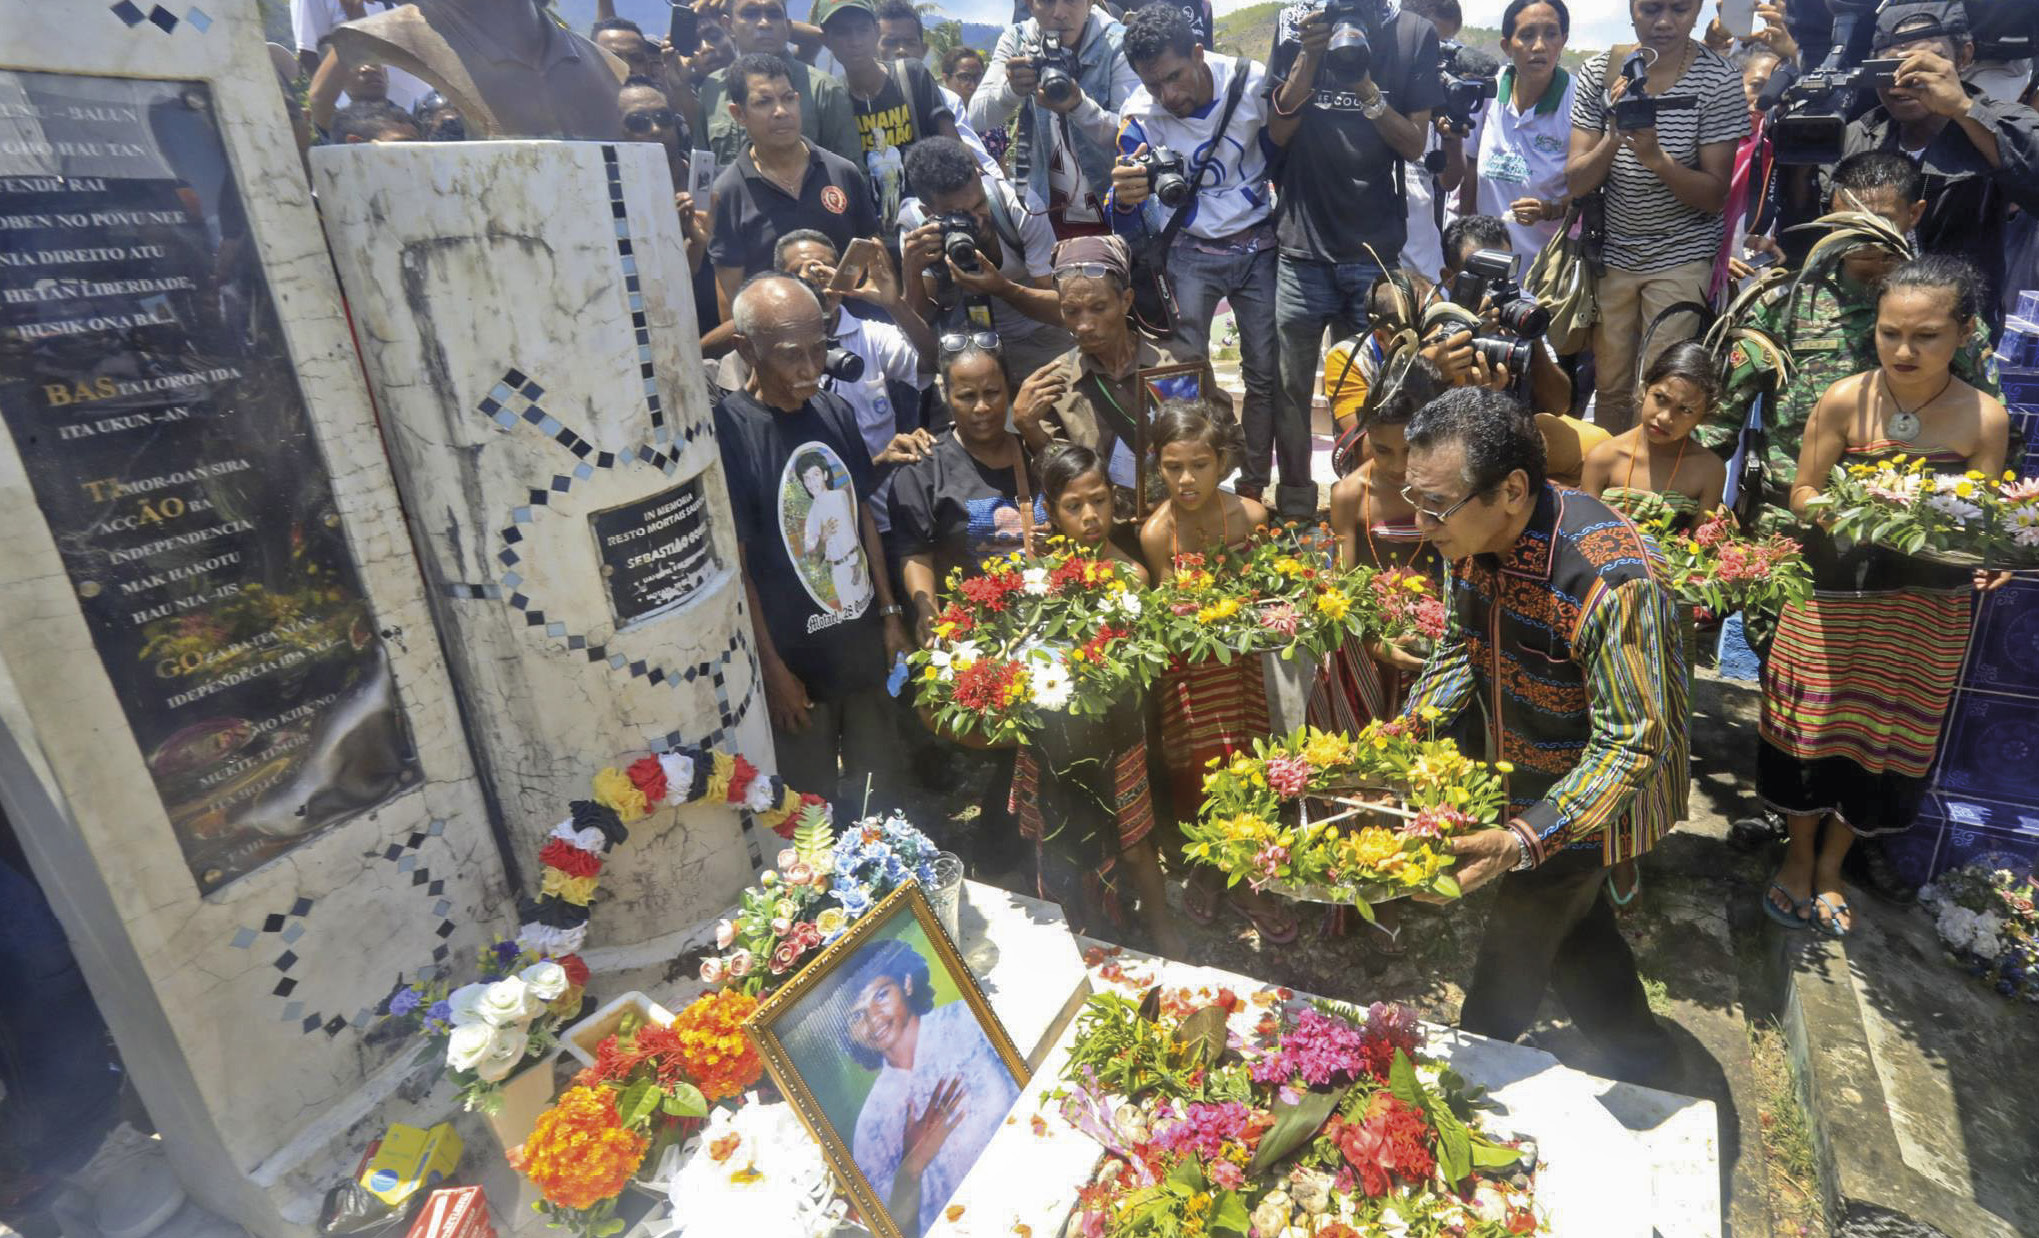 Presidente da República de Timor Leste, homenageia as vítimas do massacre no cemiterio de Santa Cruz.